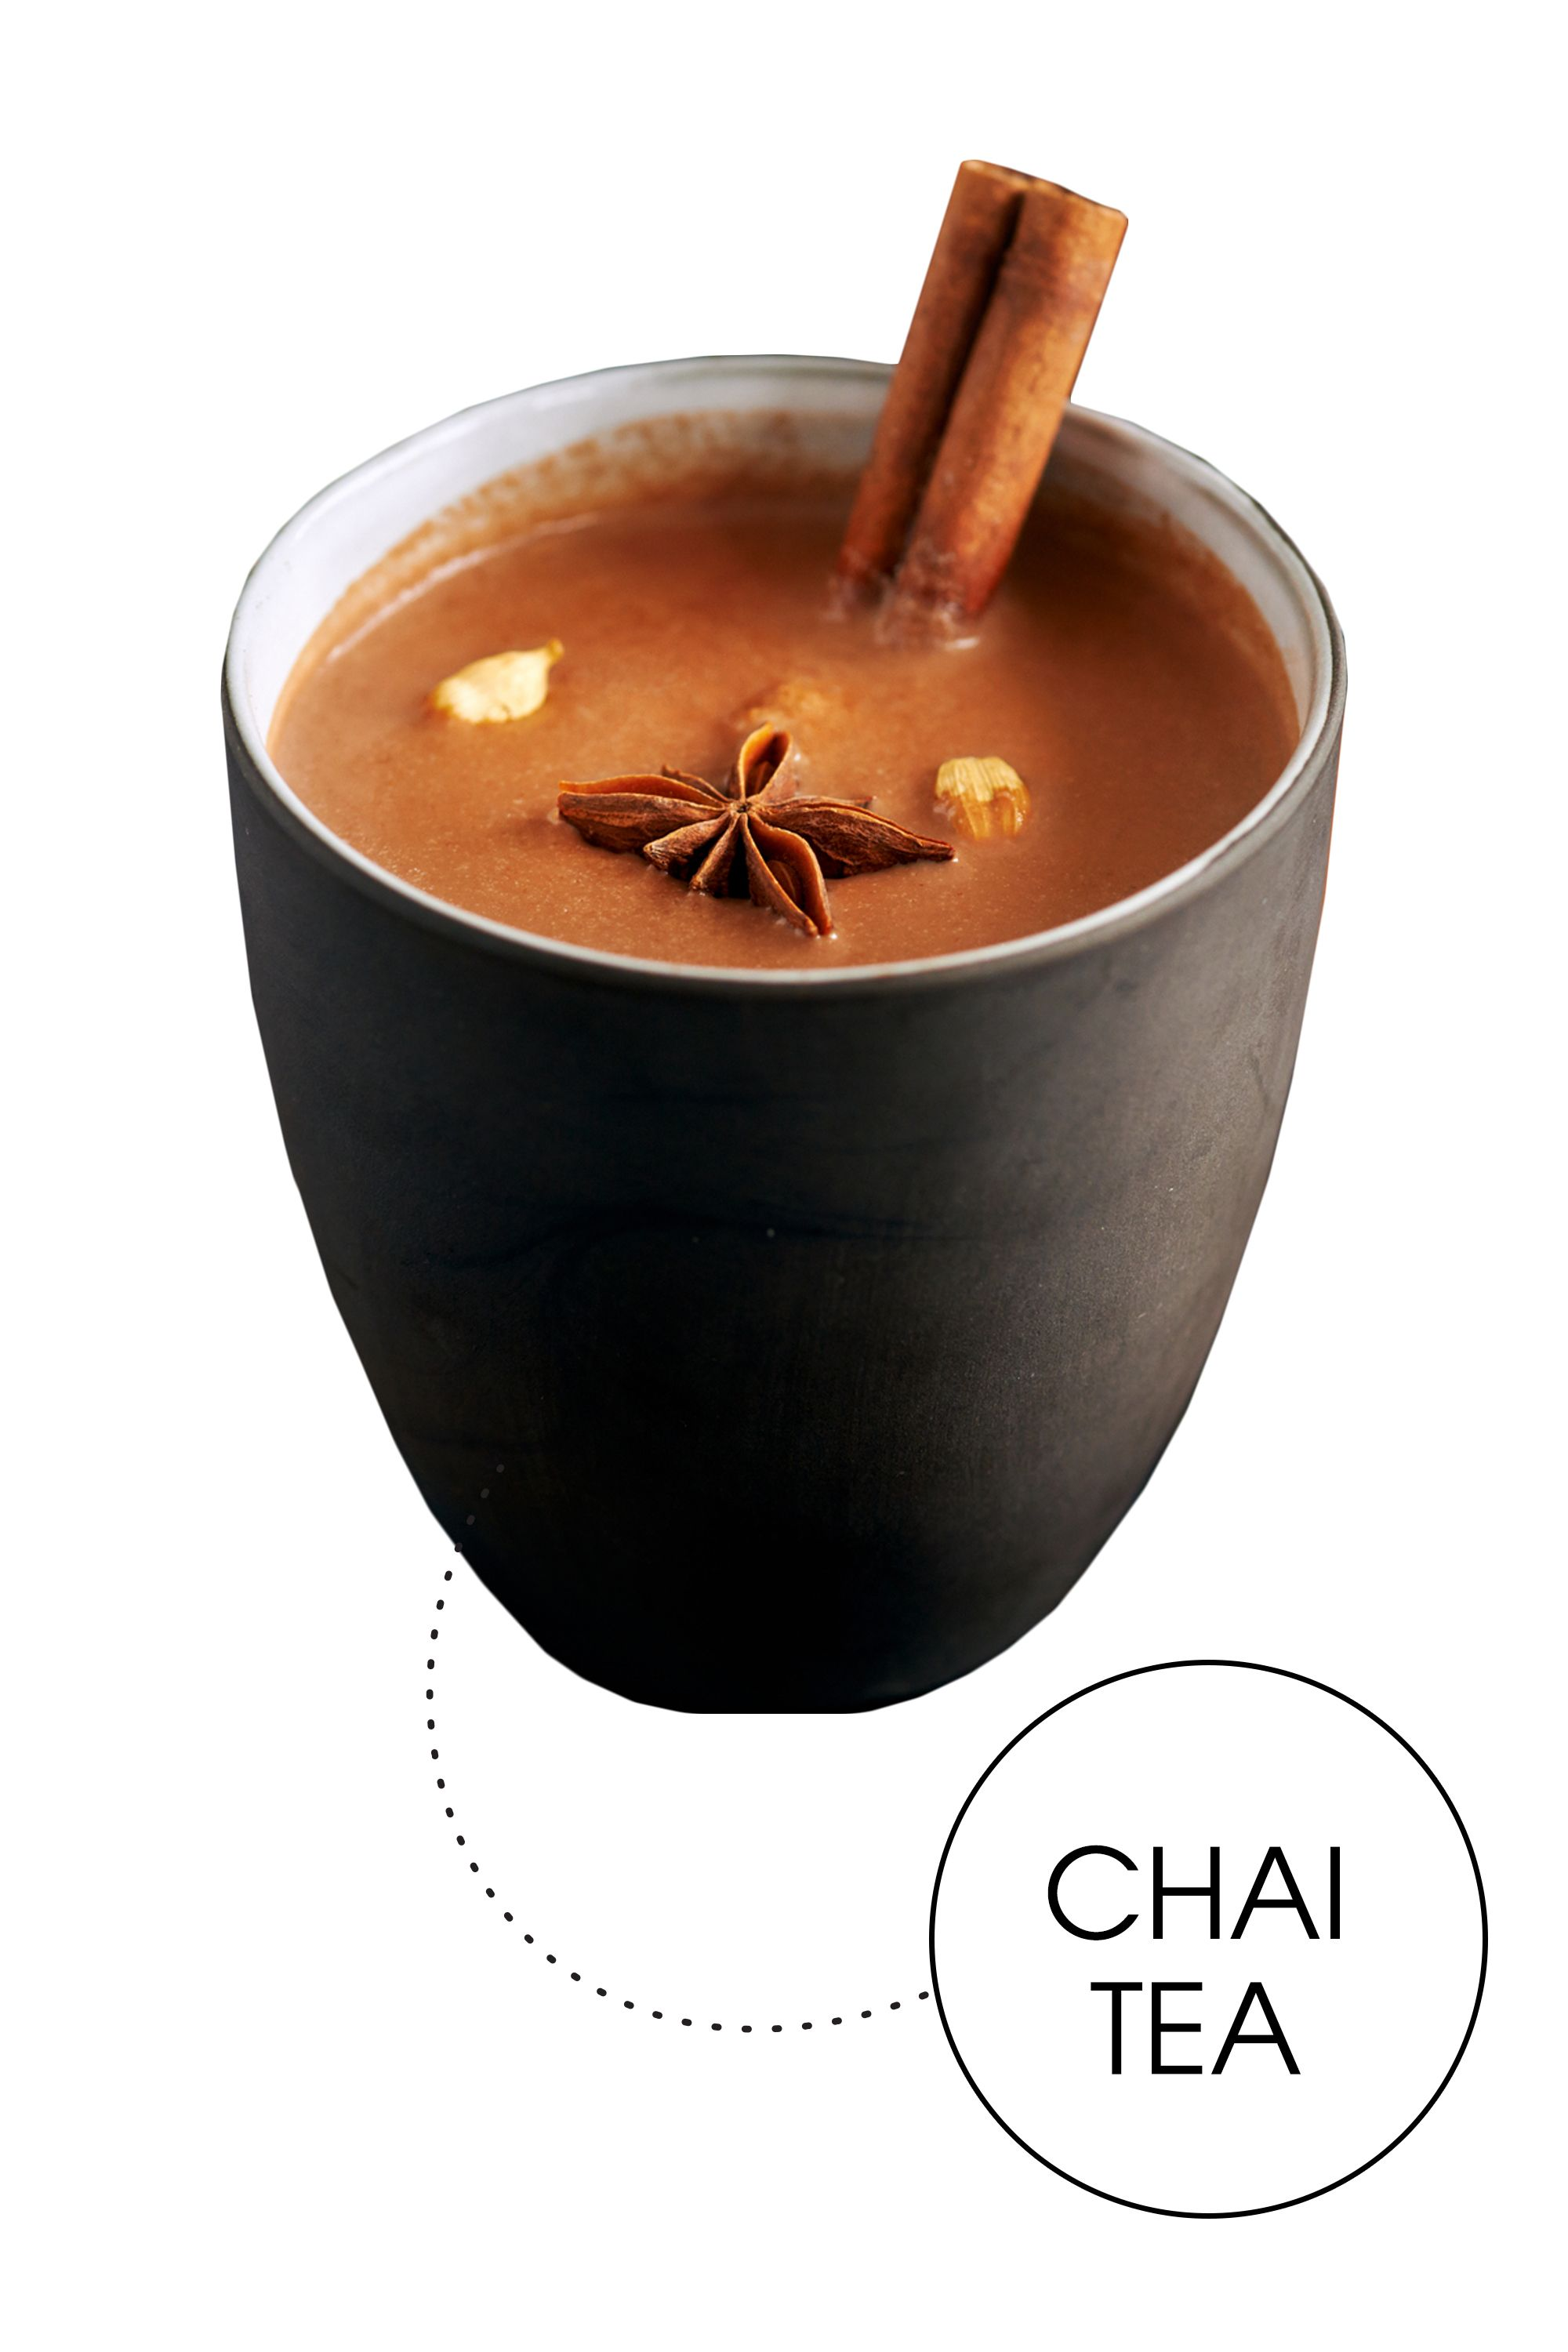 "<em>Chai tea is essentially a libido-boosting super-cocktail: Black tea, cinnamon, ginger, anise, cloves, and cardamom are all purported aphrodisiacs.</em>  ""In general I am not a lustful person, so I knew that aphrodisiac testing was going to be a little <em>womp womp</em> for me. And I was right! I tried a chai latte. I guess I should say that I used to have these every day, but since I have been on <a href=""http://www.elle.com/beauty/news/a19285/im-turning-myself-into-a-victorias-secret-angel/"">my Victoria's Secret Angel diet</a>, I said bye bye to inflammation-causing lattes in general. Perhaps my tolerance was already built up but after about 3 months quitting cold turkey, you'd think I'd feel a little sumpin' sumpin'. Guess what? Nope, I'm dead inside."""